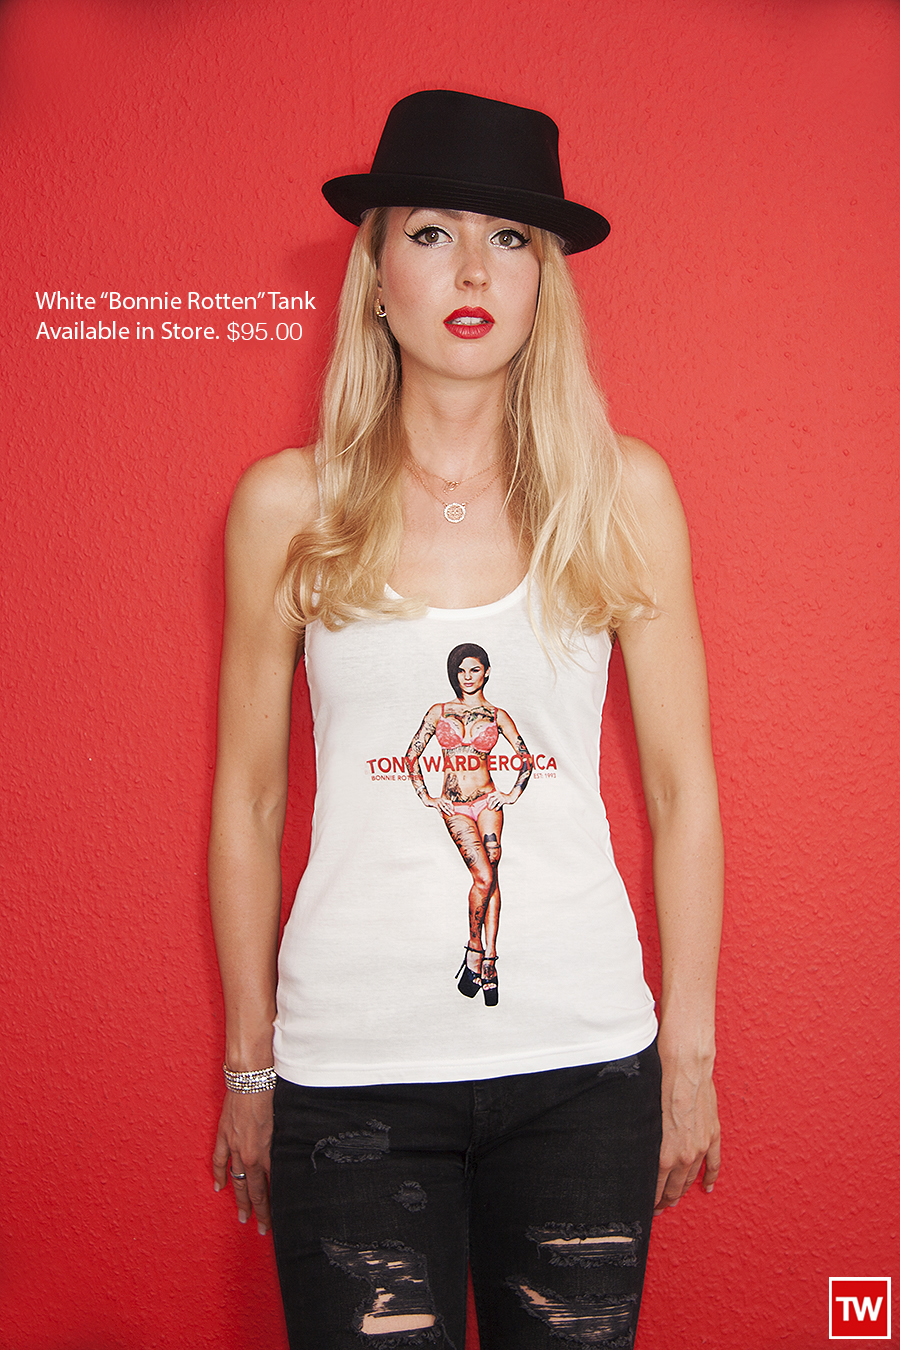 Tony_Ward_erotica_white_Bonnie_Rotten_tank_sexy_porn_wear_style_new_price